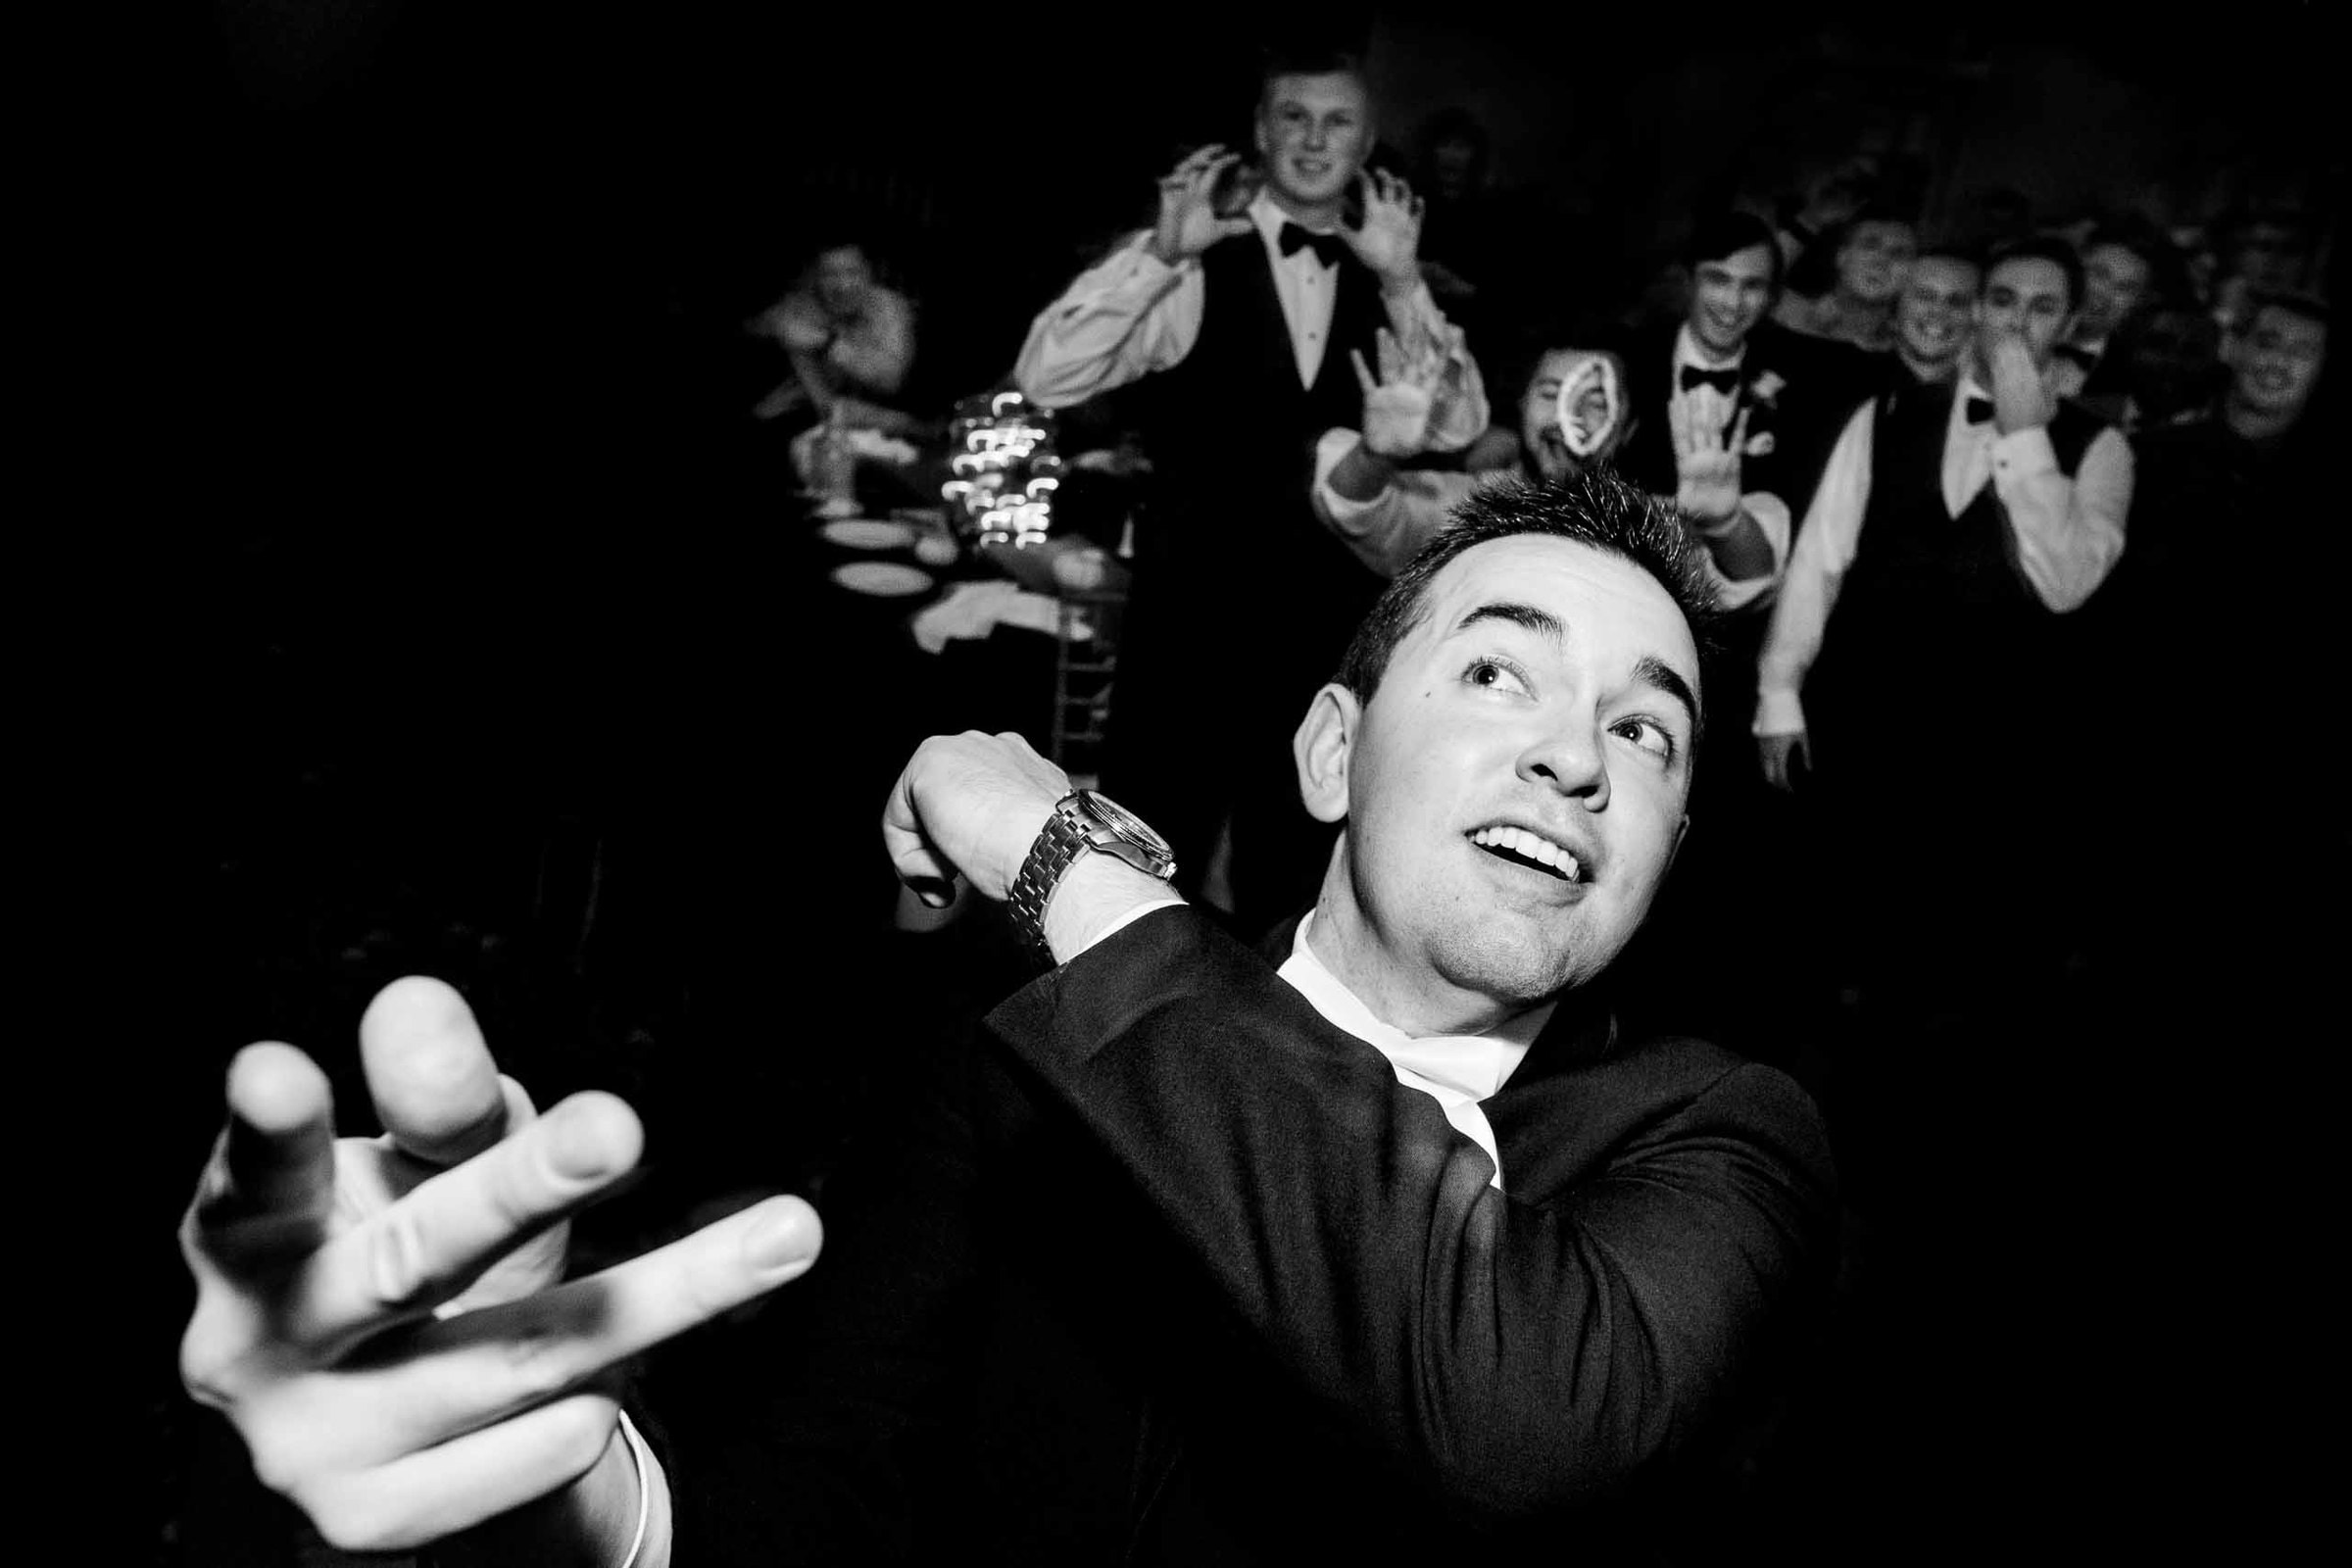 Groom throwing his buttoner to his friends at his Columbia Gorge Hotel Wedding reception